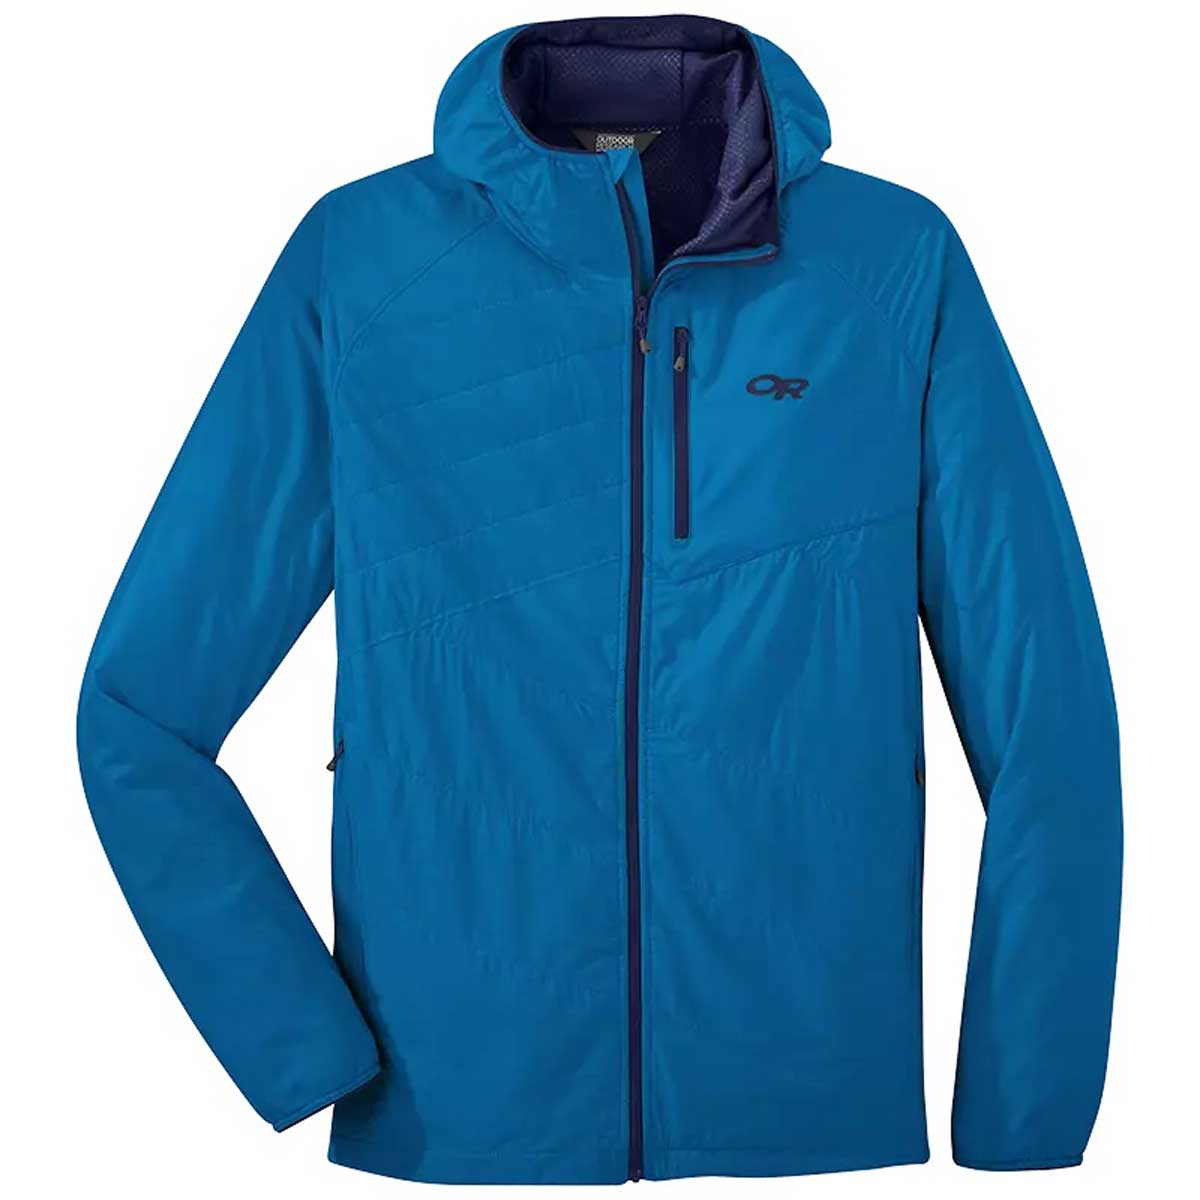 Outdoor Research Men's Refuge Air Hooded Jacket in Cascade